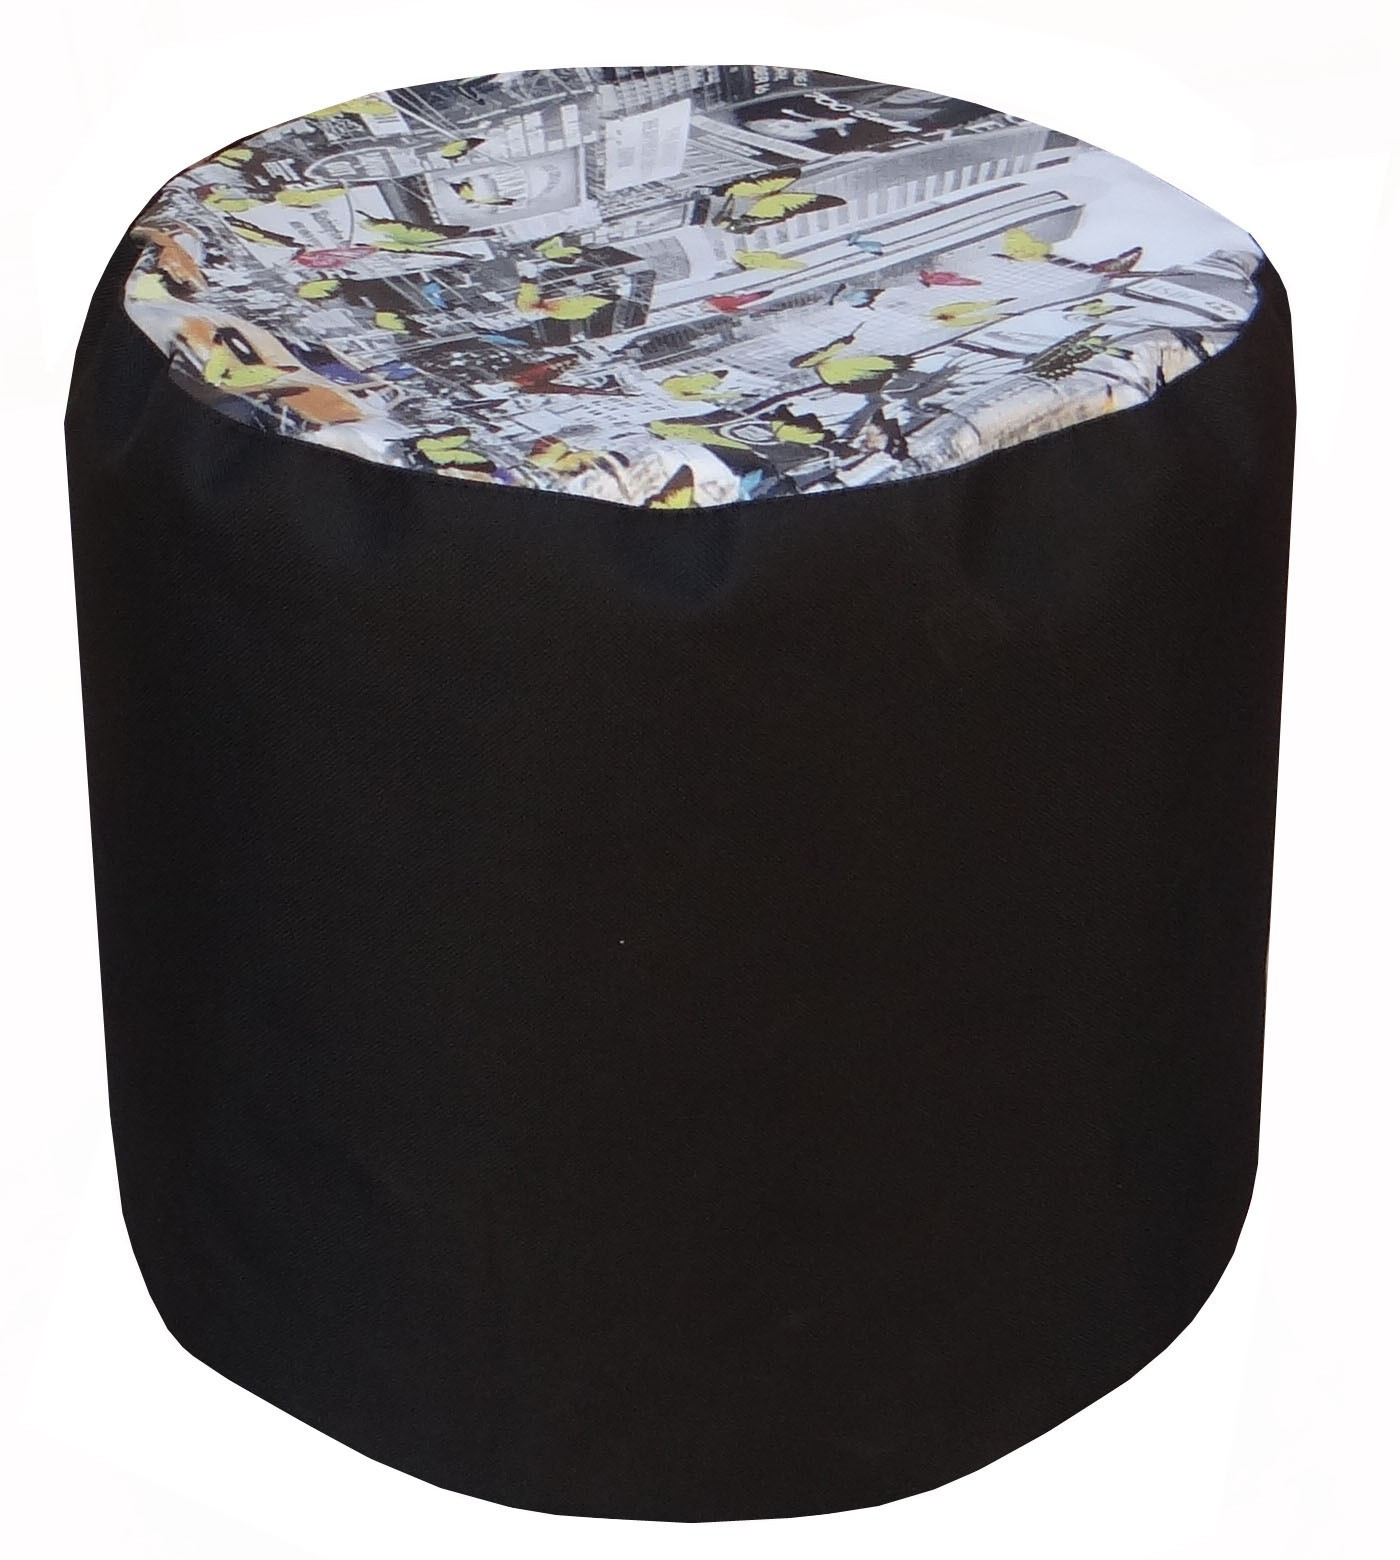 Orka Bean Bags XXL Bean Bag Footstool  With Bean Filling available at Flipkart for Rs.699